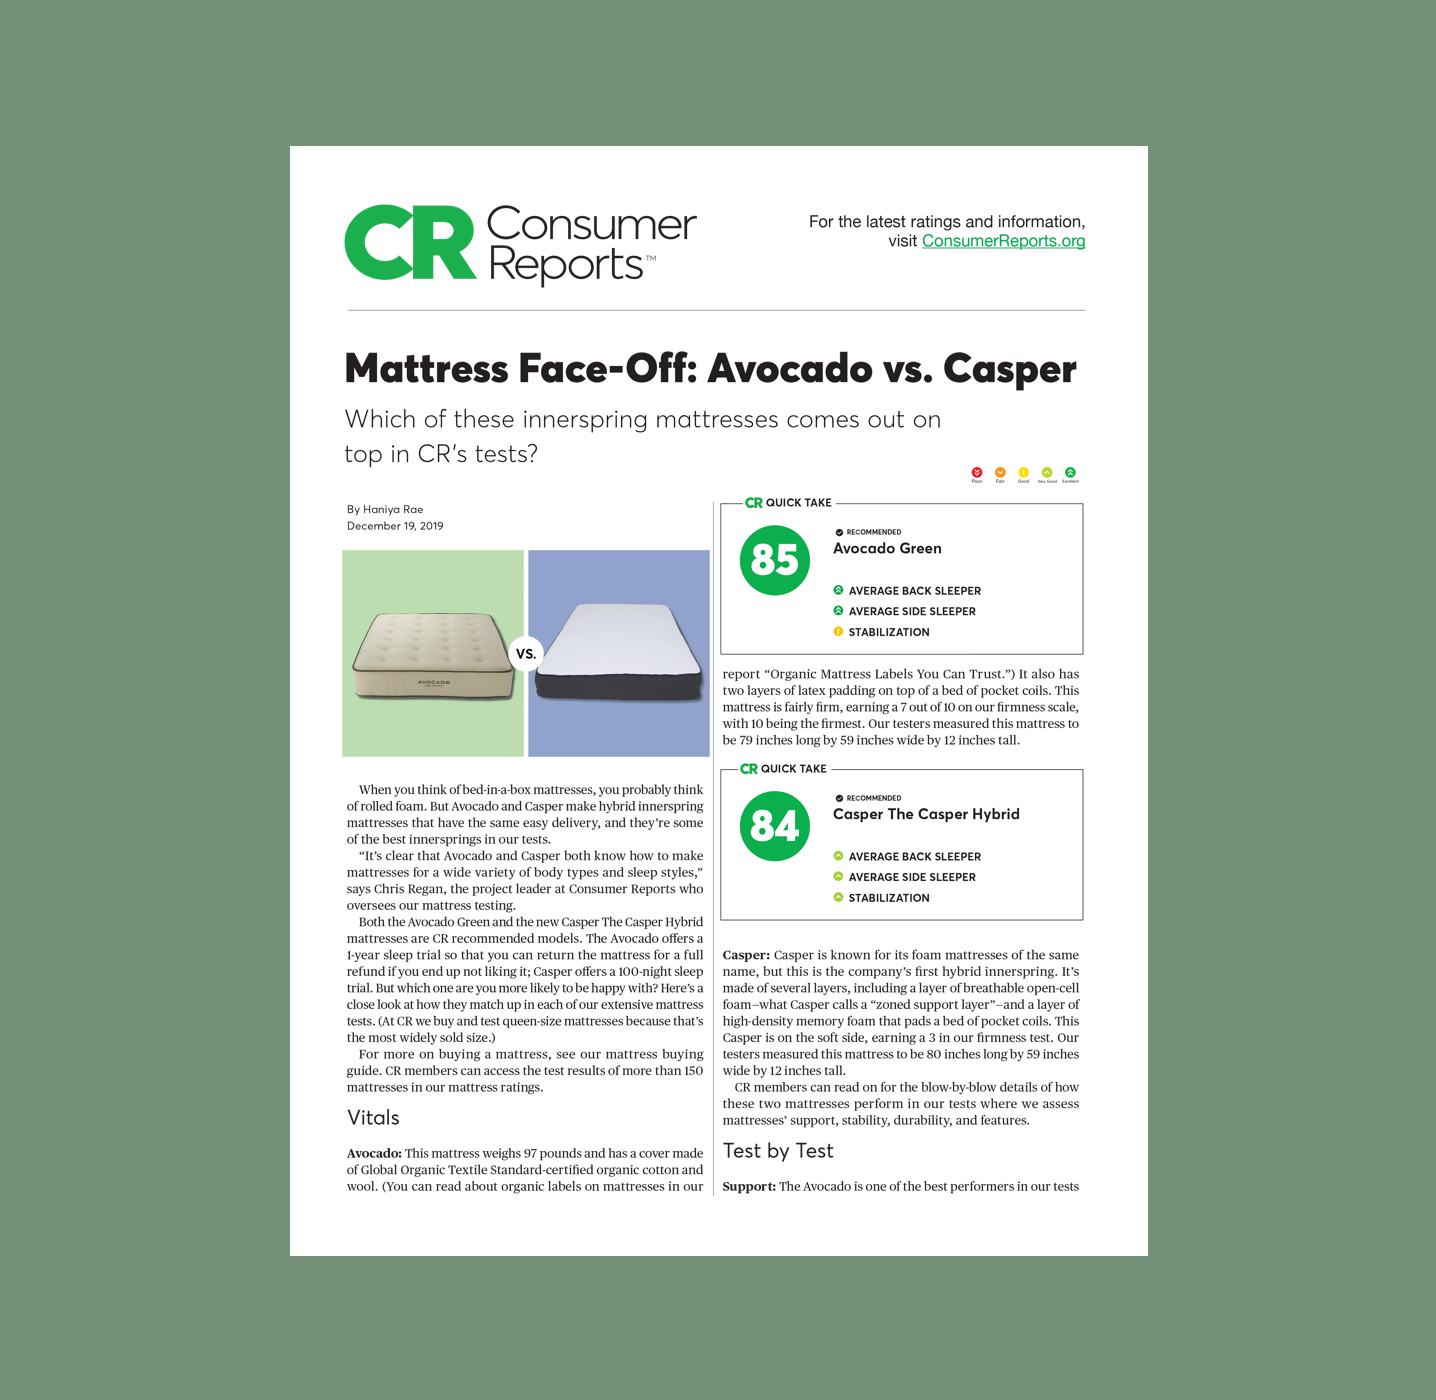 Consumer Reports Mattress Face-Off Avocado vs Casper